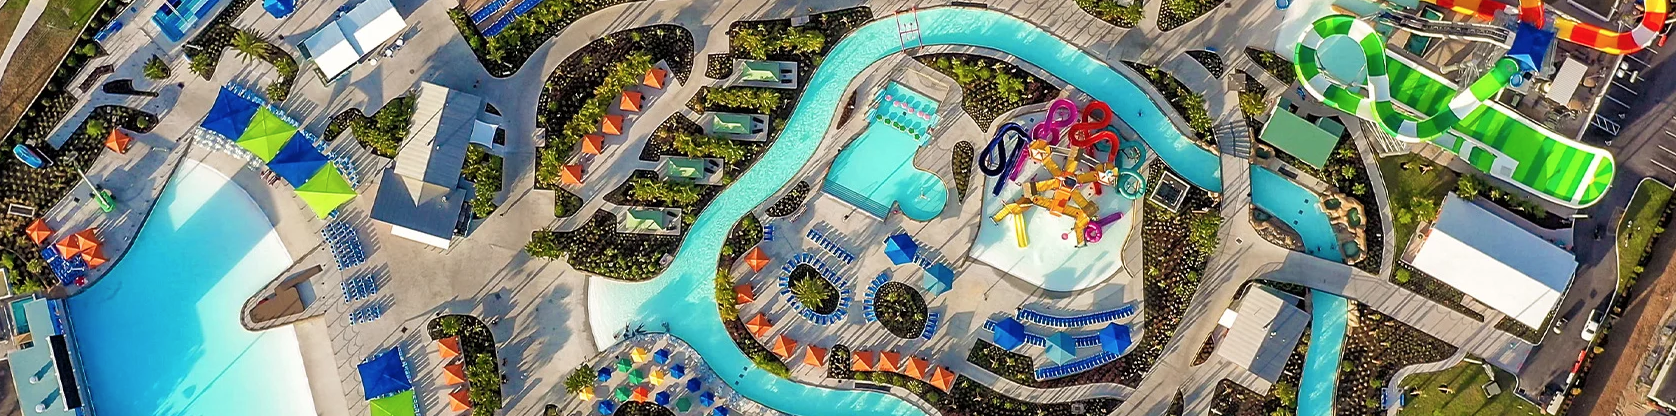 Island H2o Water Park near Reunion Resort